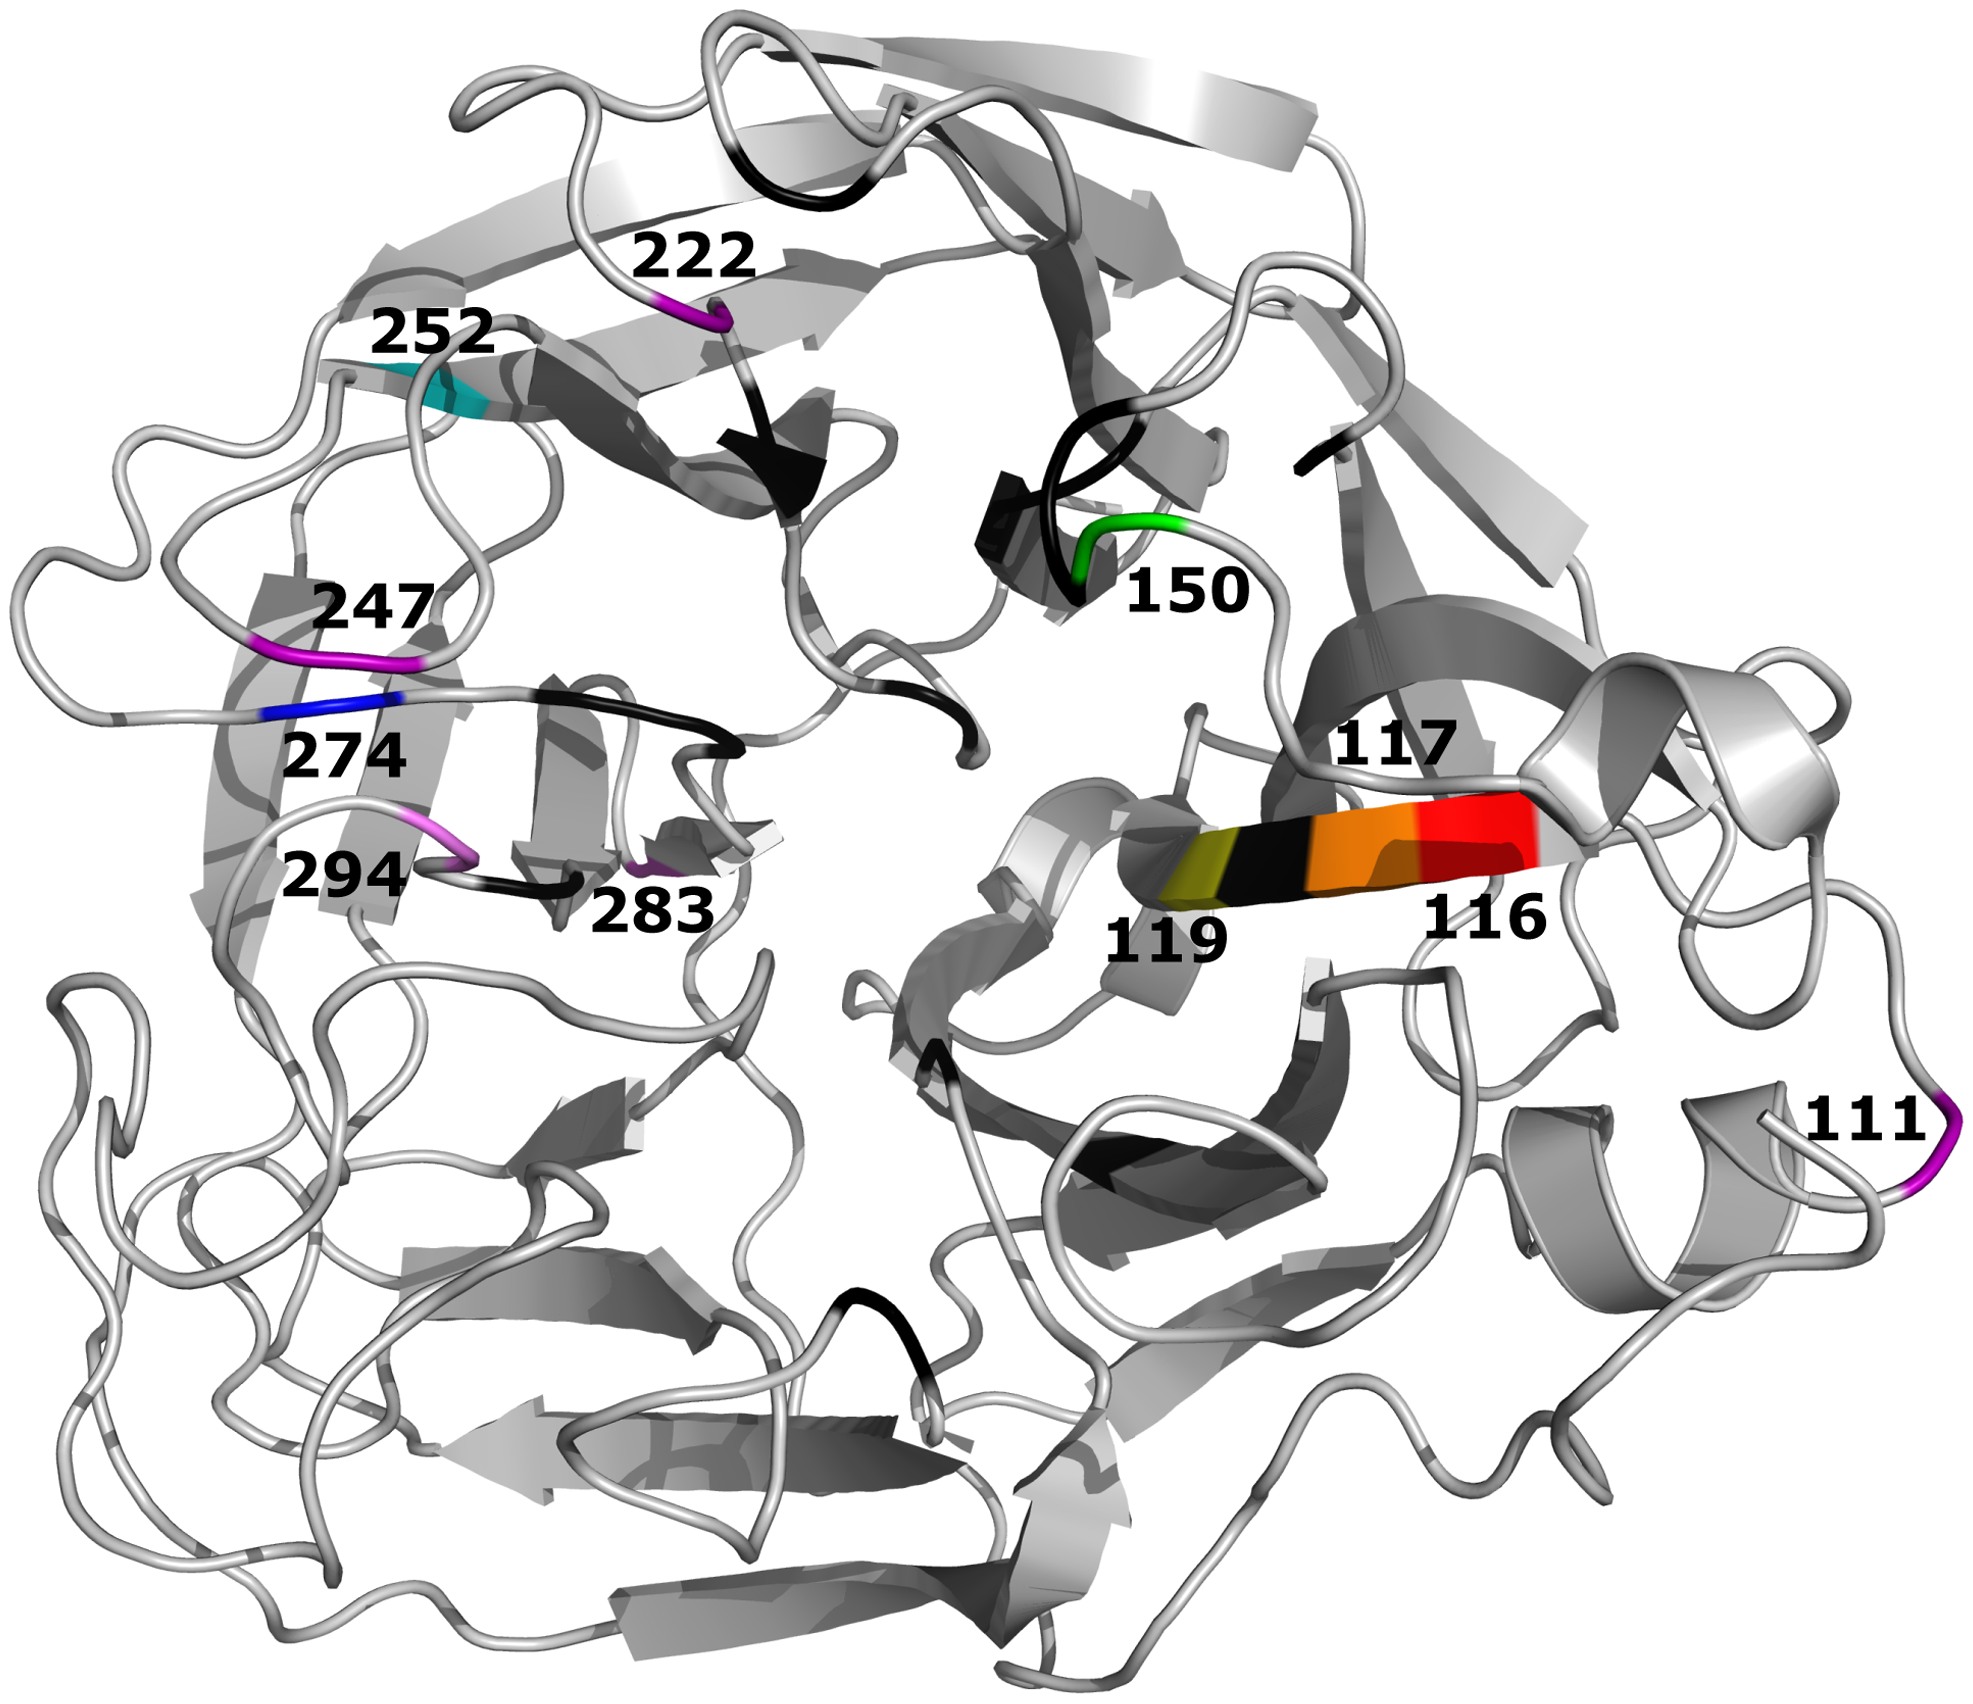 Crystal structure of the A/Vietnam/1203/04 (H5N1) NA molecule (Protein Data Bank:2HTY).